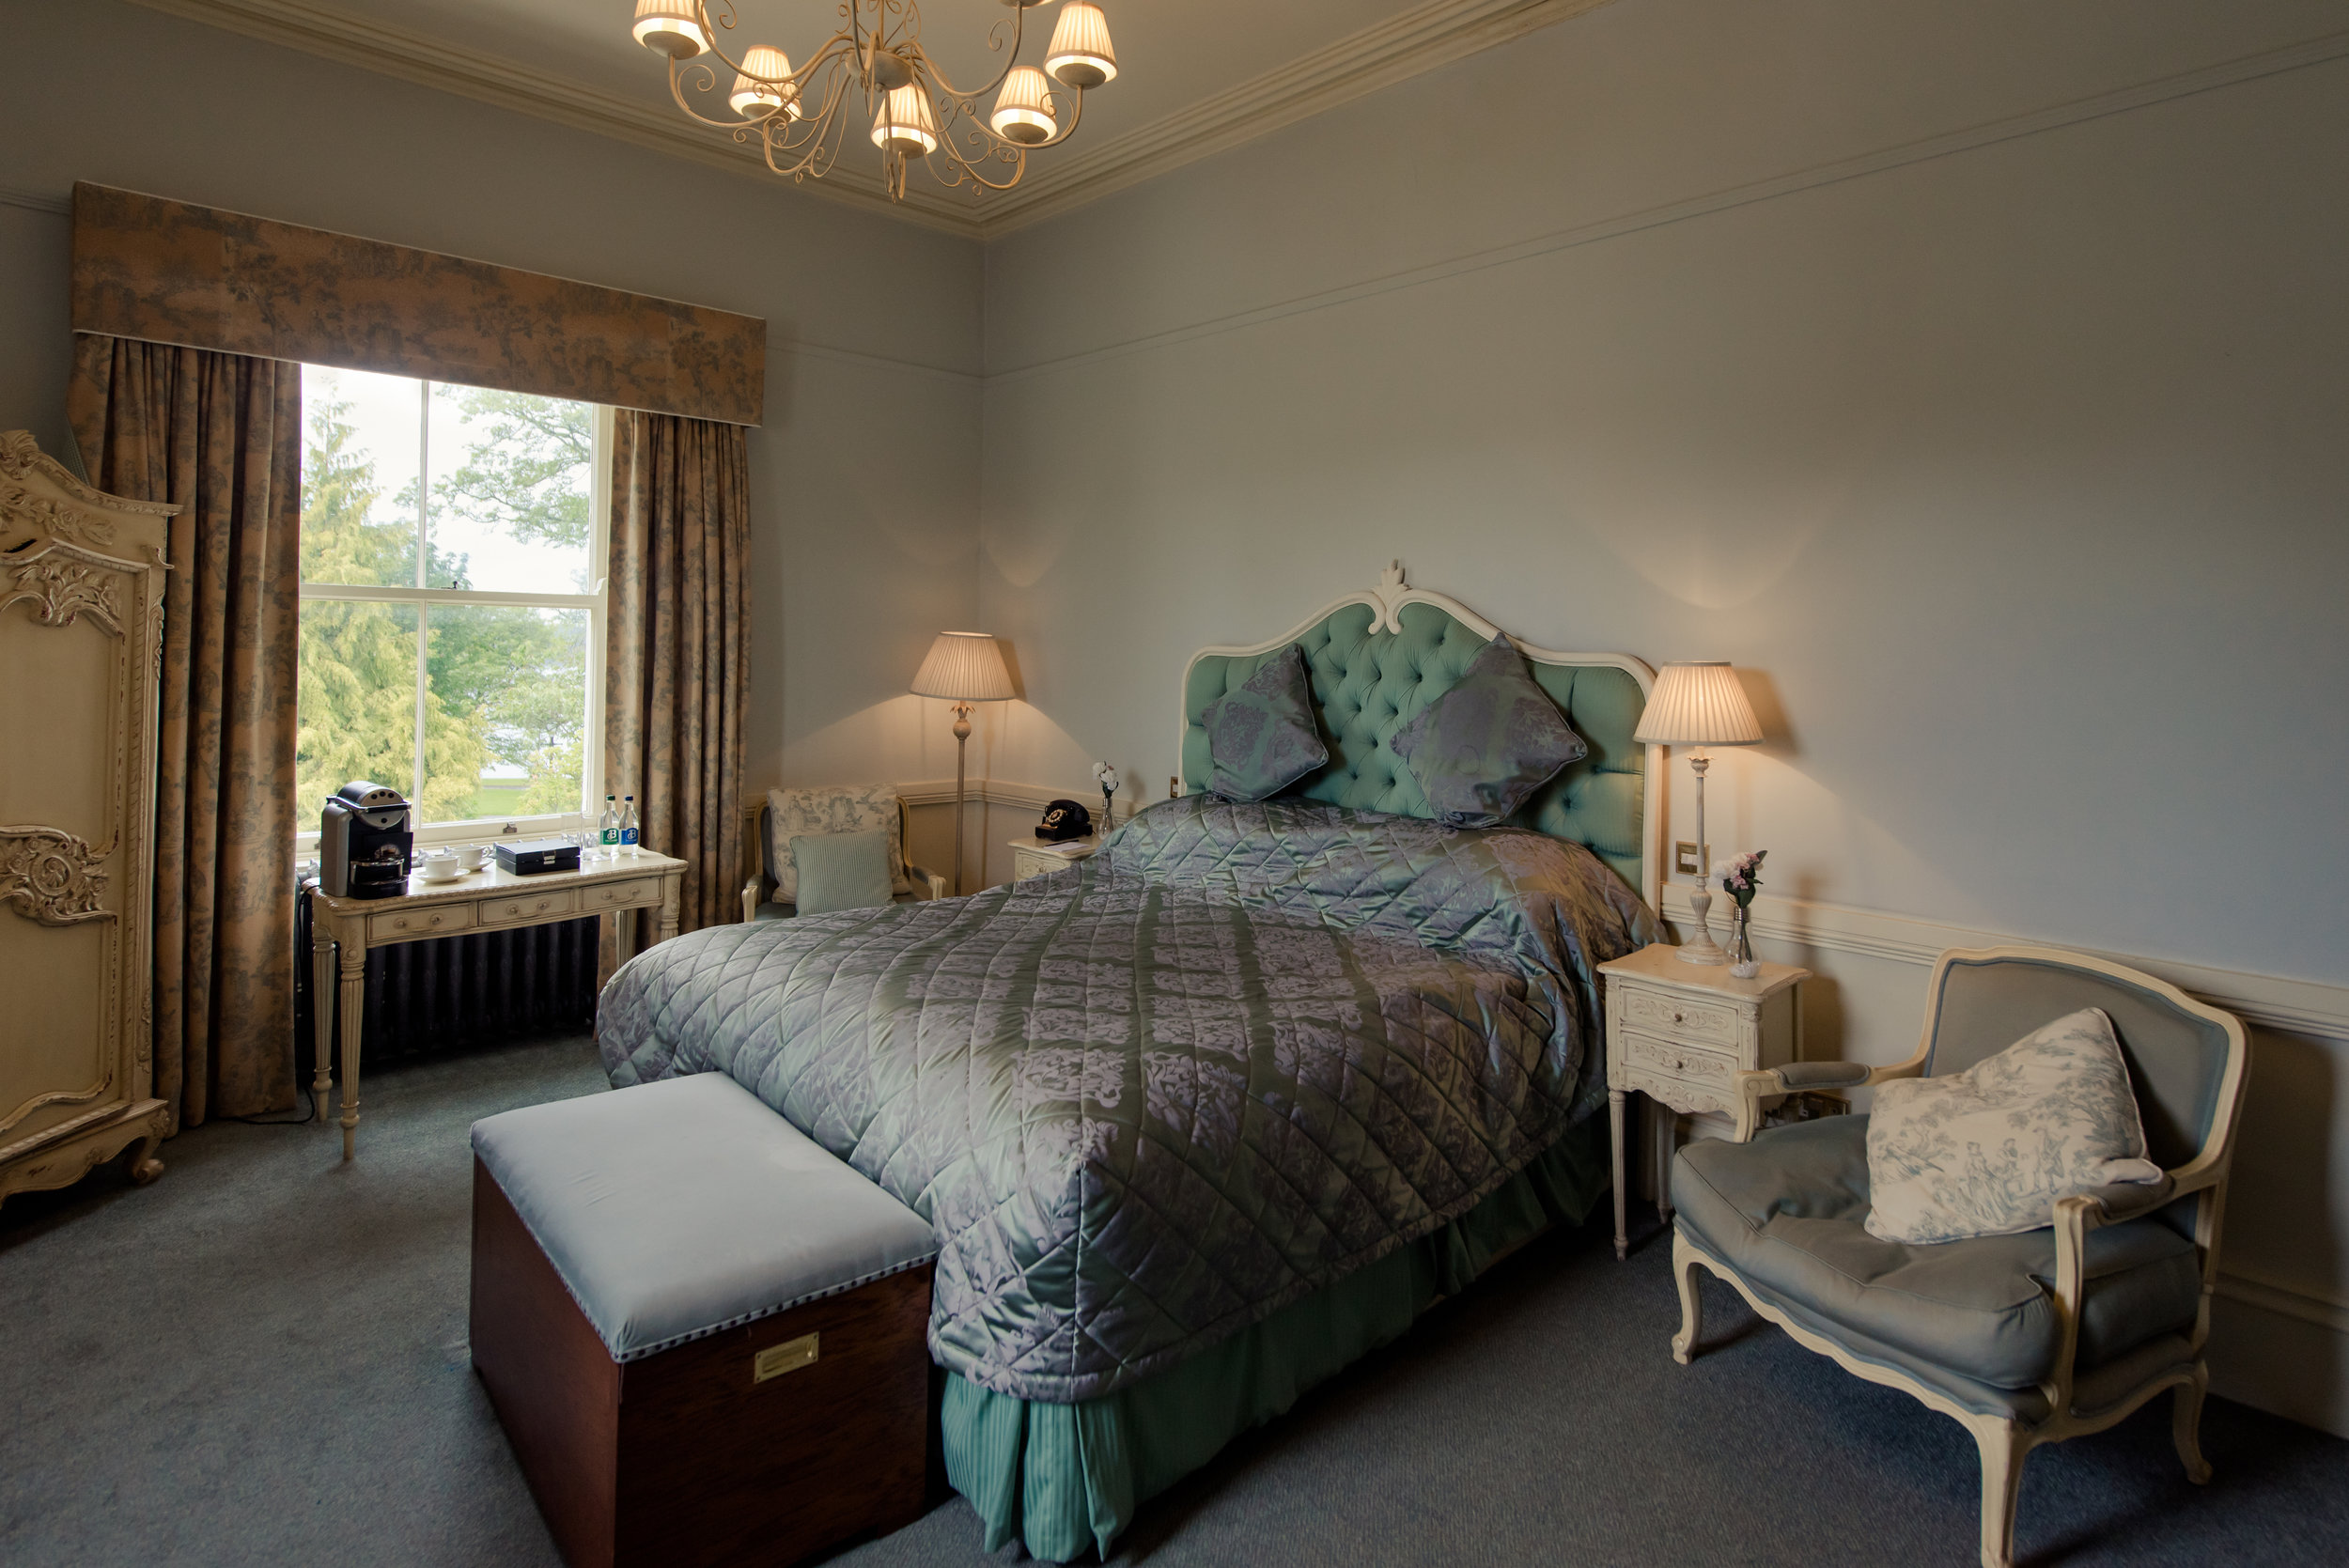 Tulfarris Hotel & Golf Resort Manor House with window view and chandelier.jpg